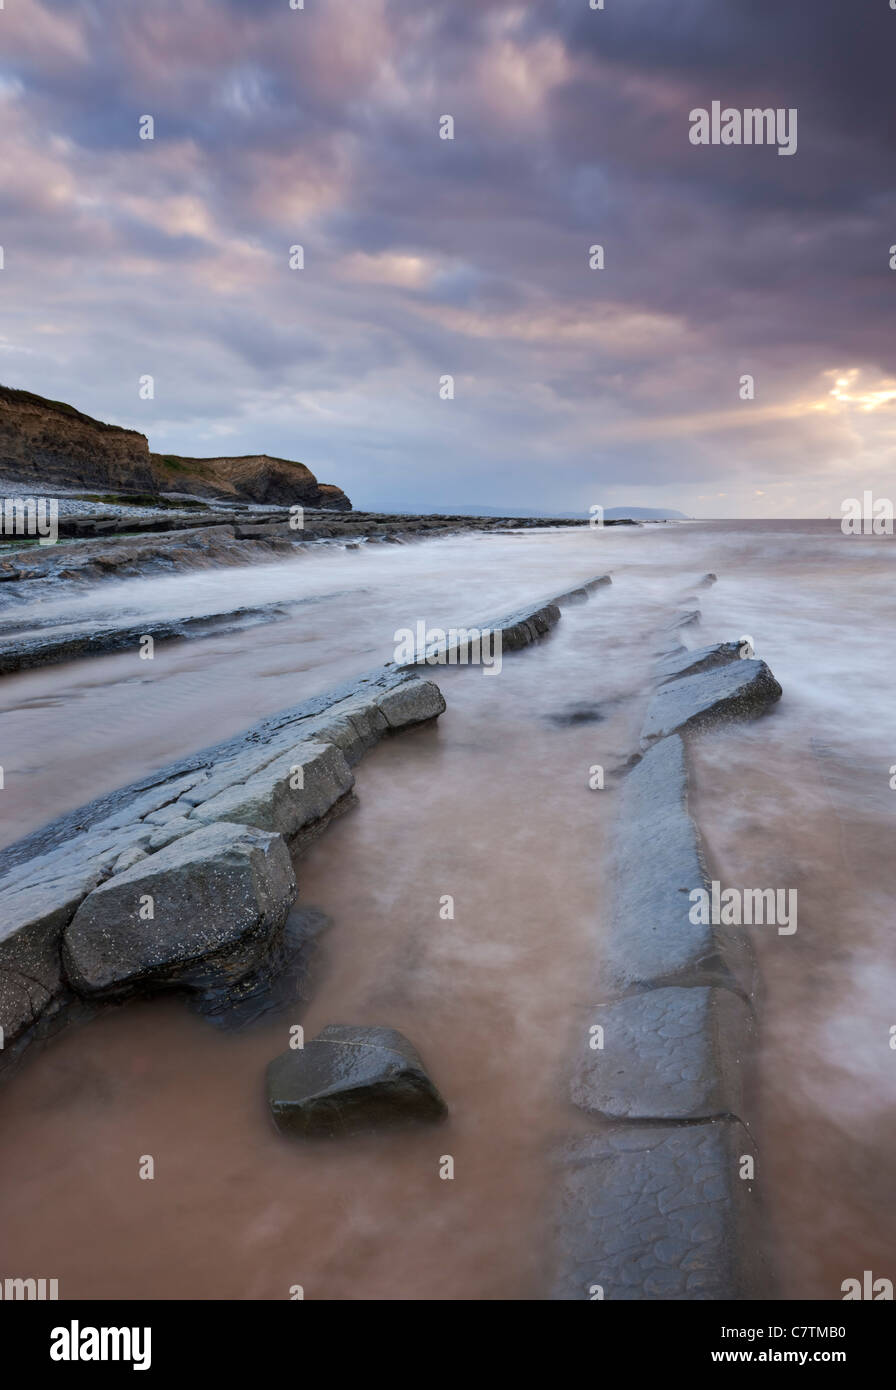 Stormy evening on Kilve Beach, Somerset, England. Summer (June) 2011. - Stock Image